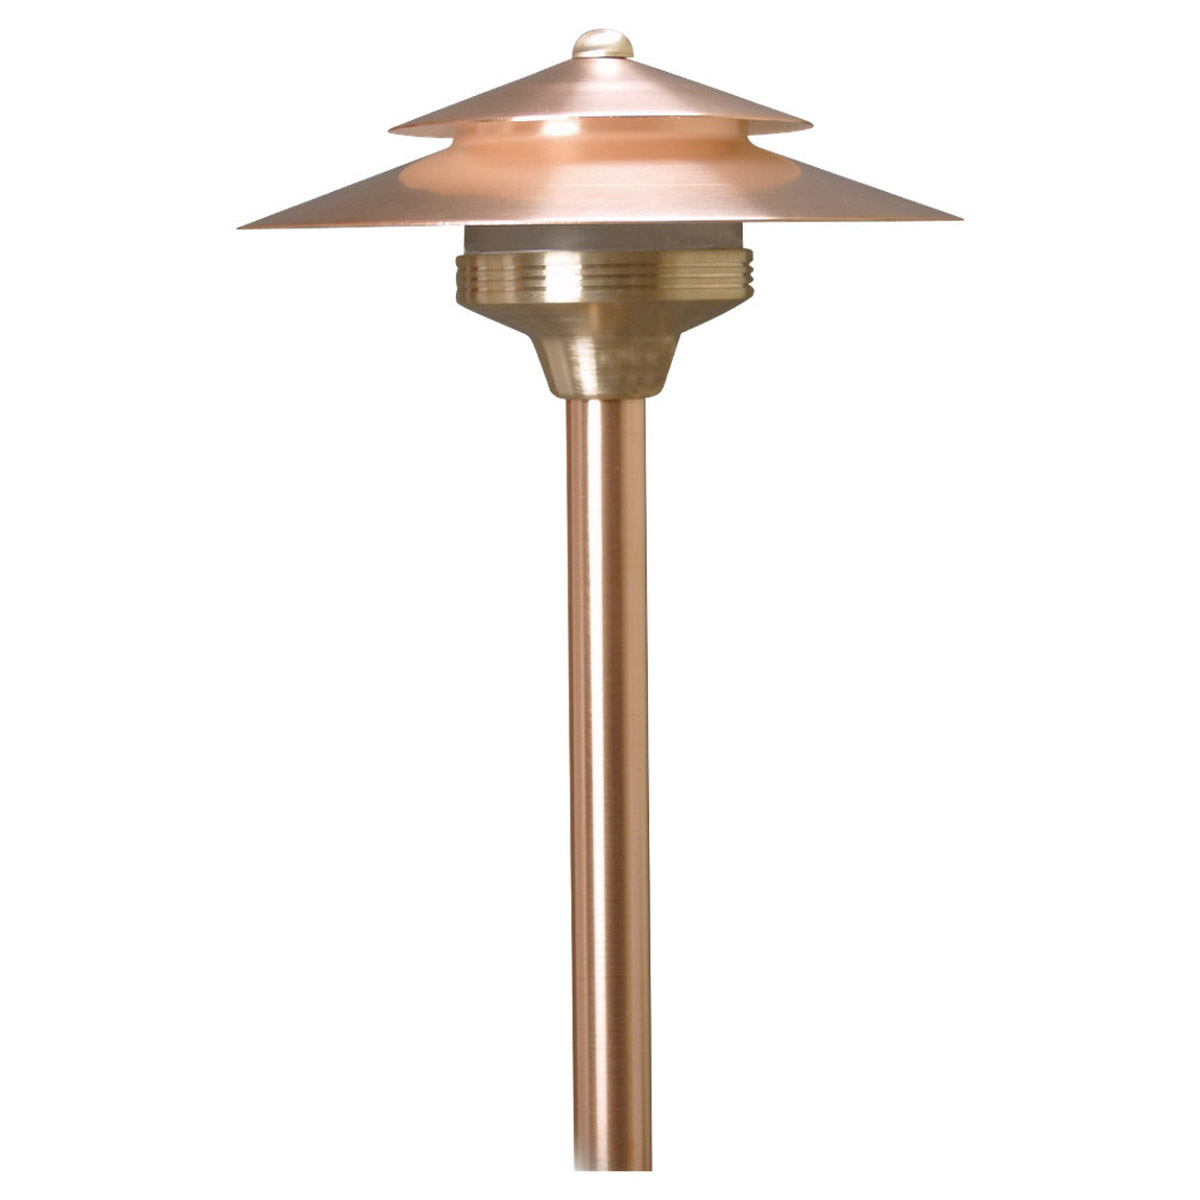 Sea Gull Lighting Cypress-Unique 1 Light Landscape Path Light in Natural Copper 91190-148 photo